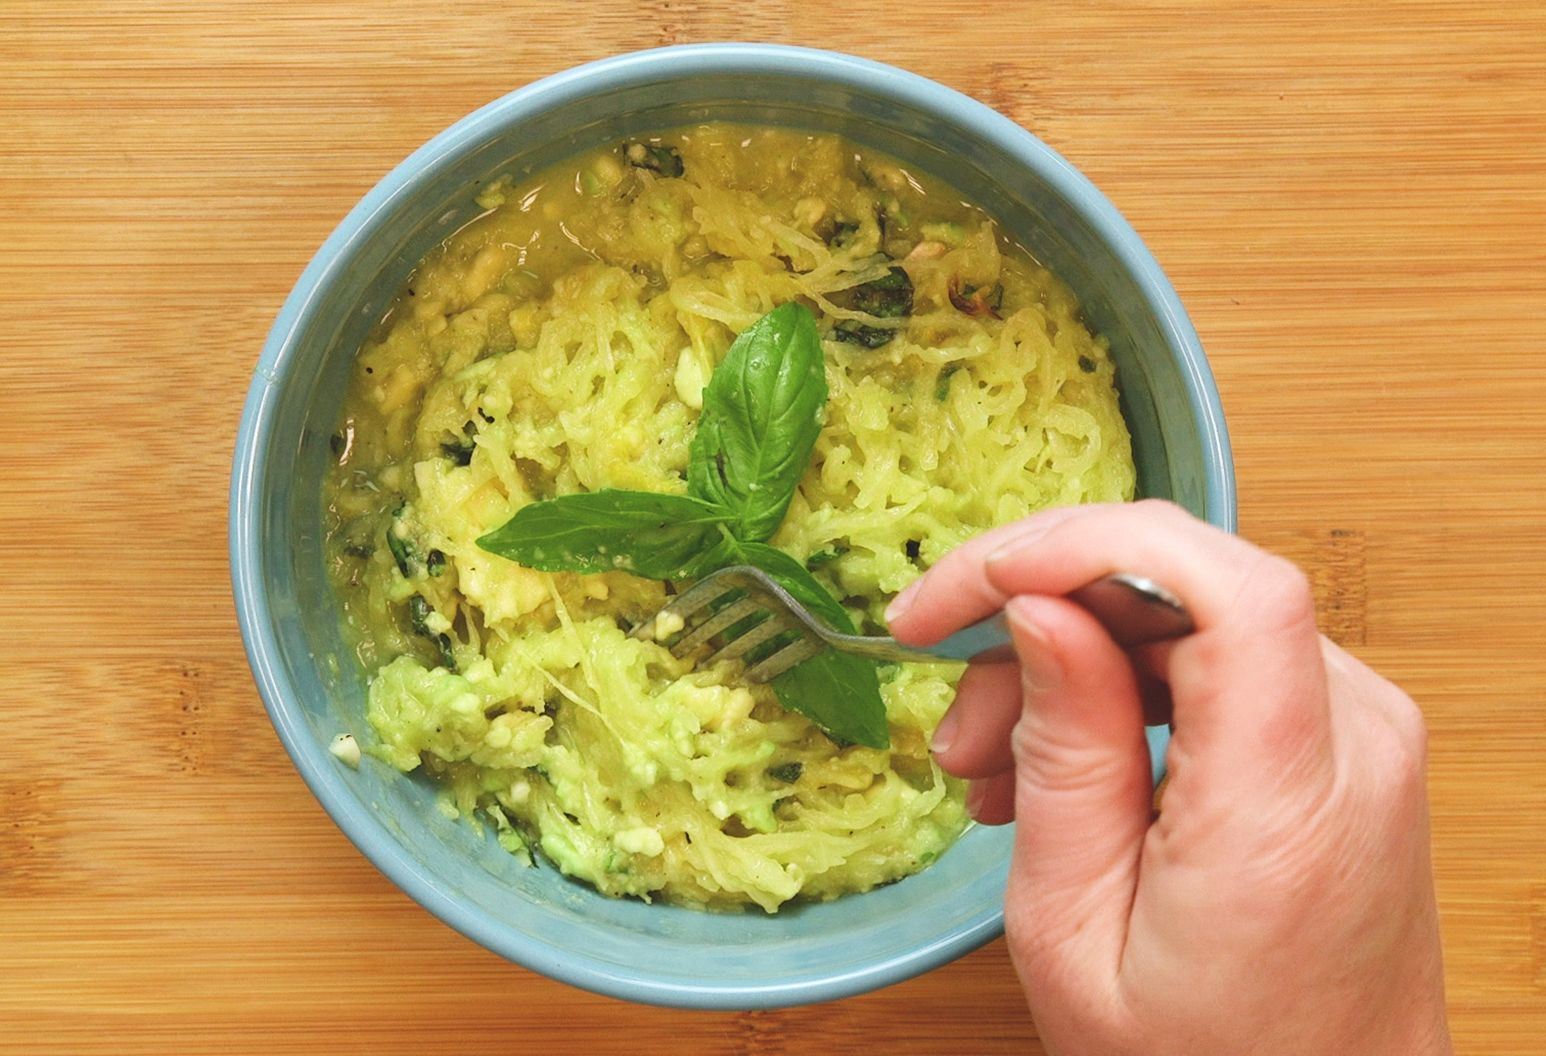 Spaghetti squash and avocado pesto recipe. |